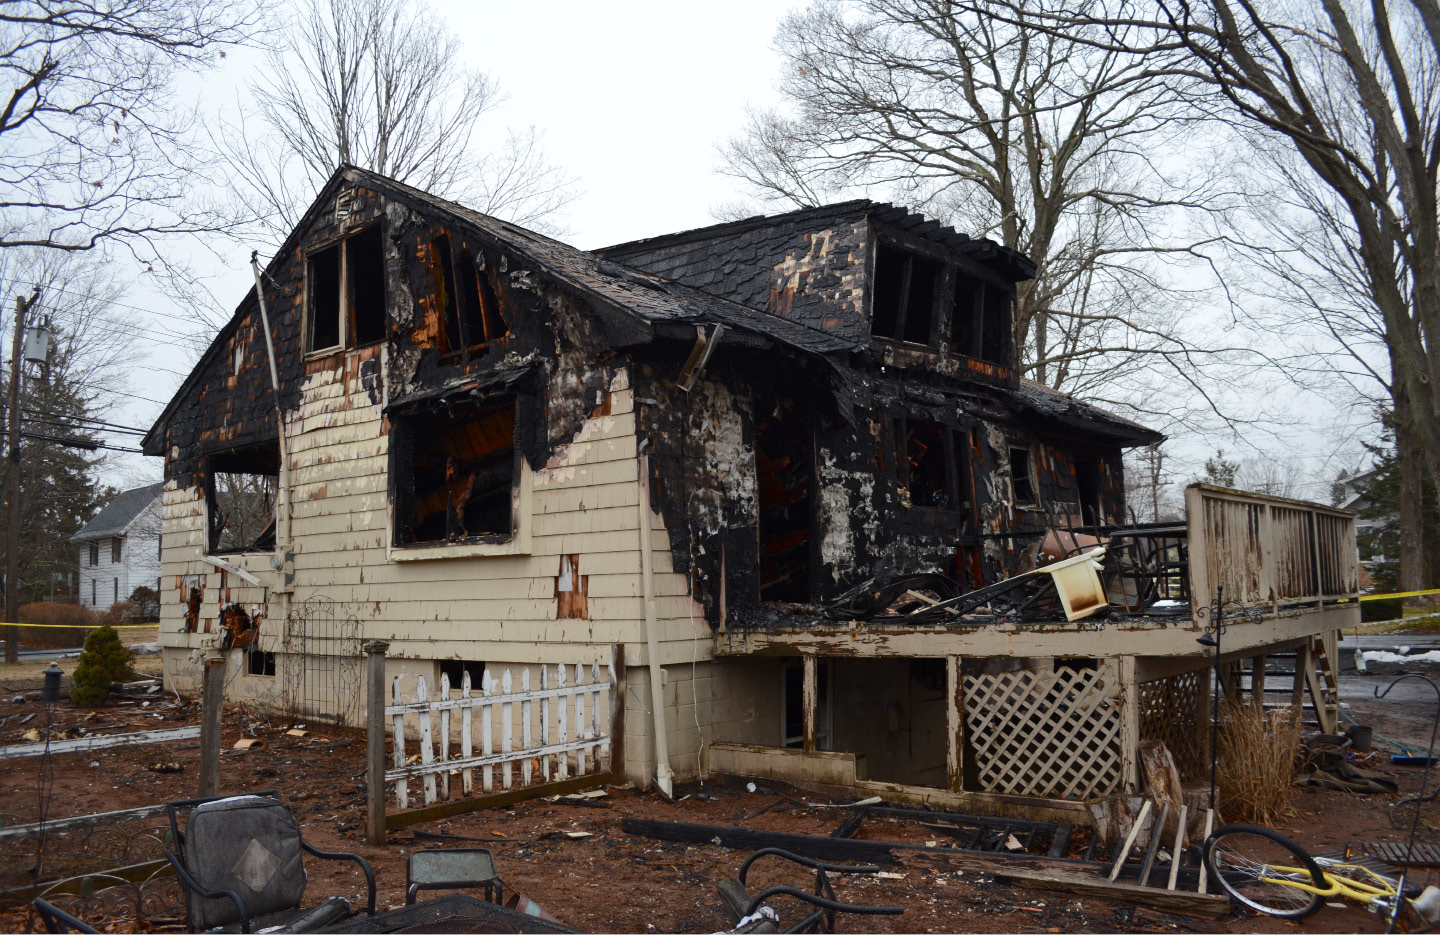 SOUTHINGTON — A firefighter suffered a minor injury at a